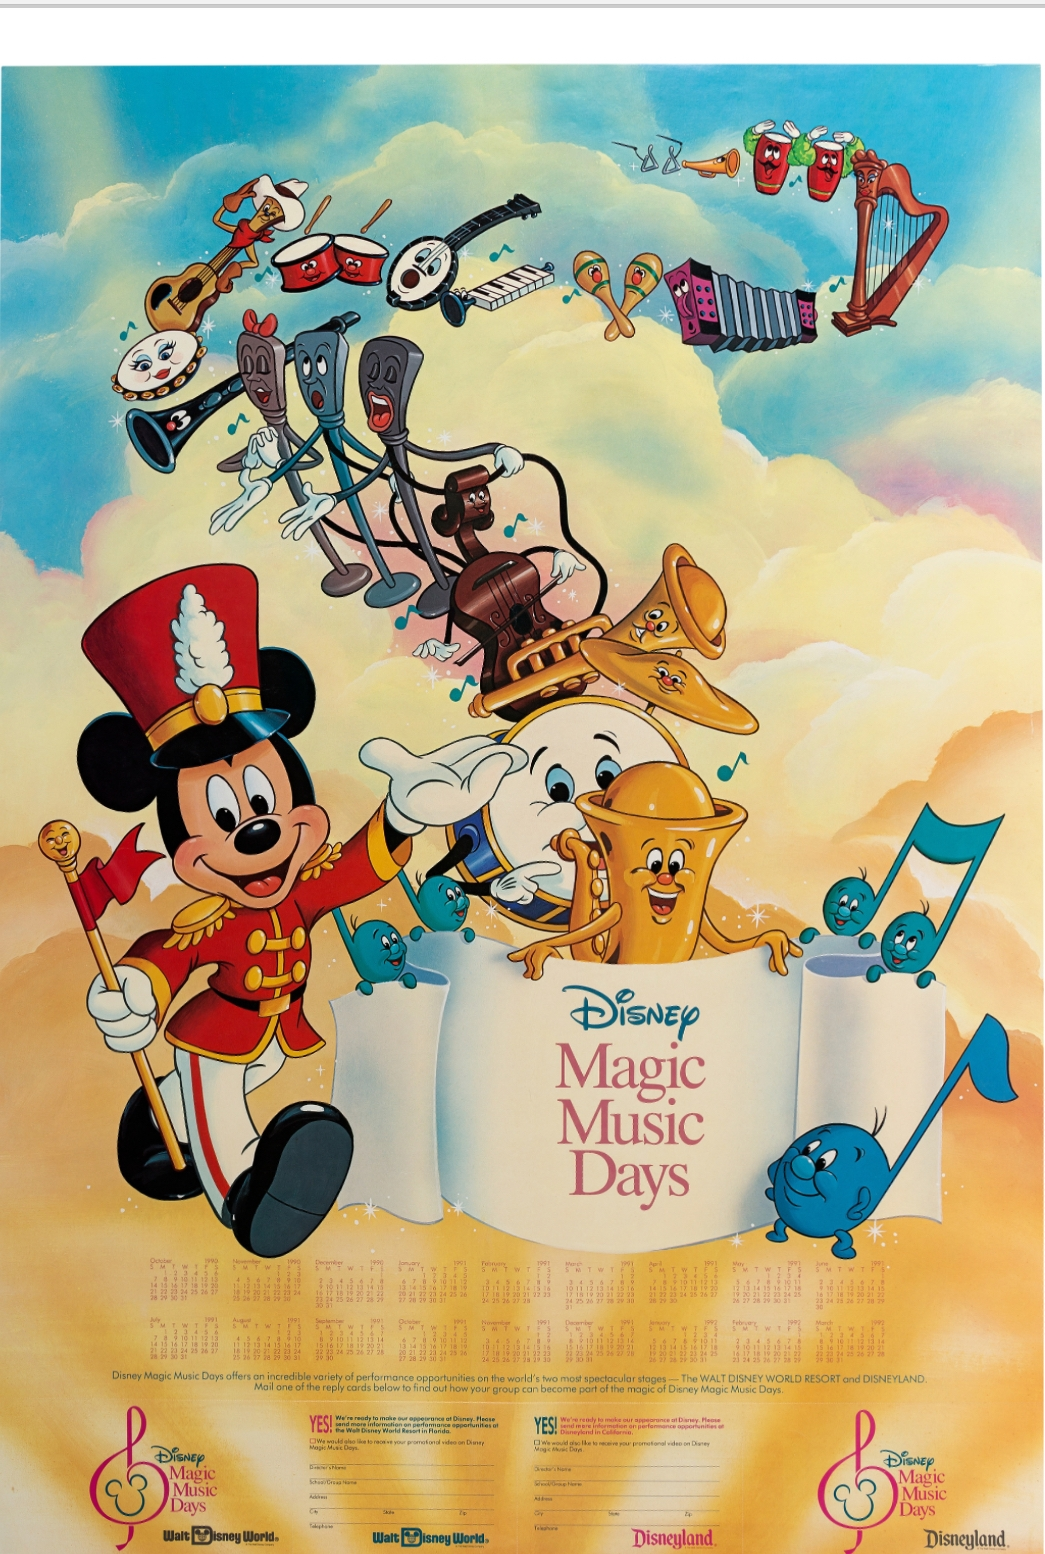 Disney Magic Music Days Mickey Mouse Poster Illustration And Printed Poster Walt Disney 1990 Photo Of Published Work In Roland Benton S Disney Mickey Mouse Minnie Mouse And Pluto Comic Art Gallery Room